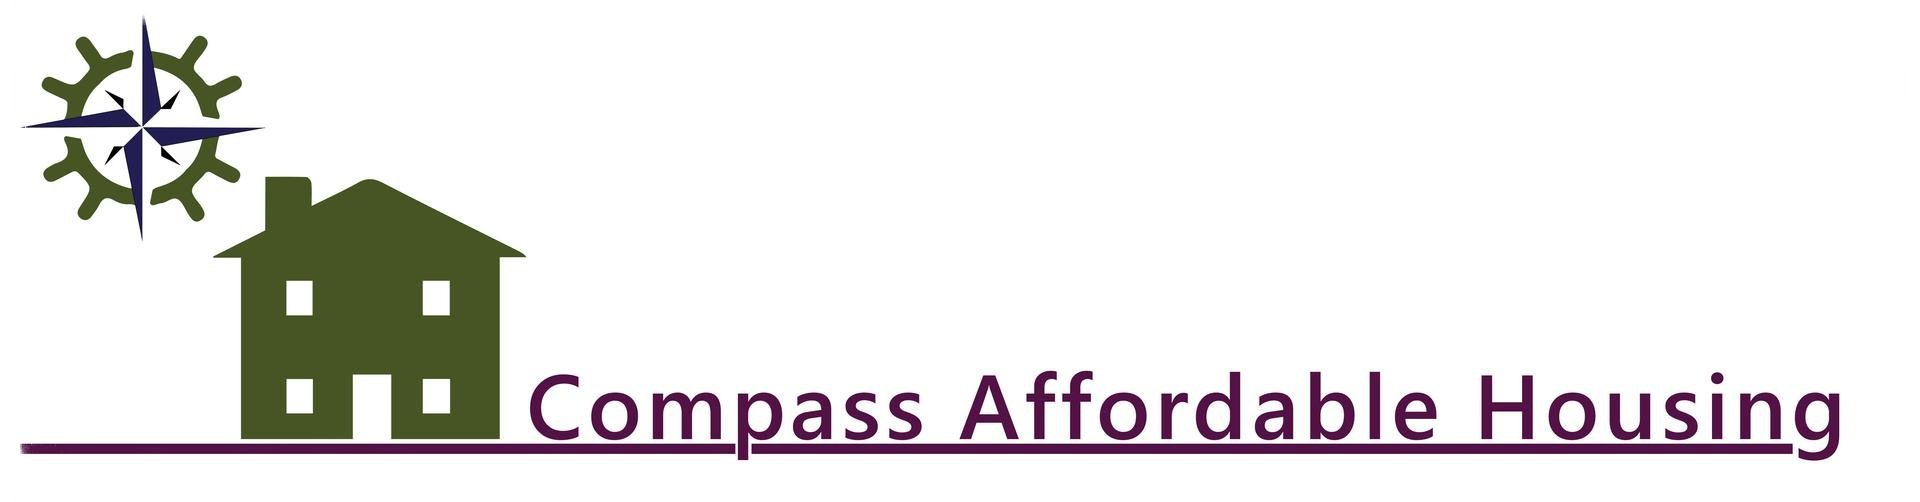 Compass Affordable Housing logo